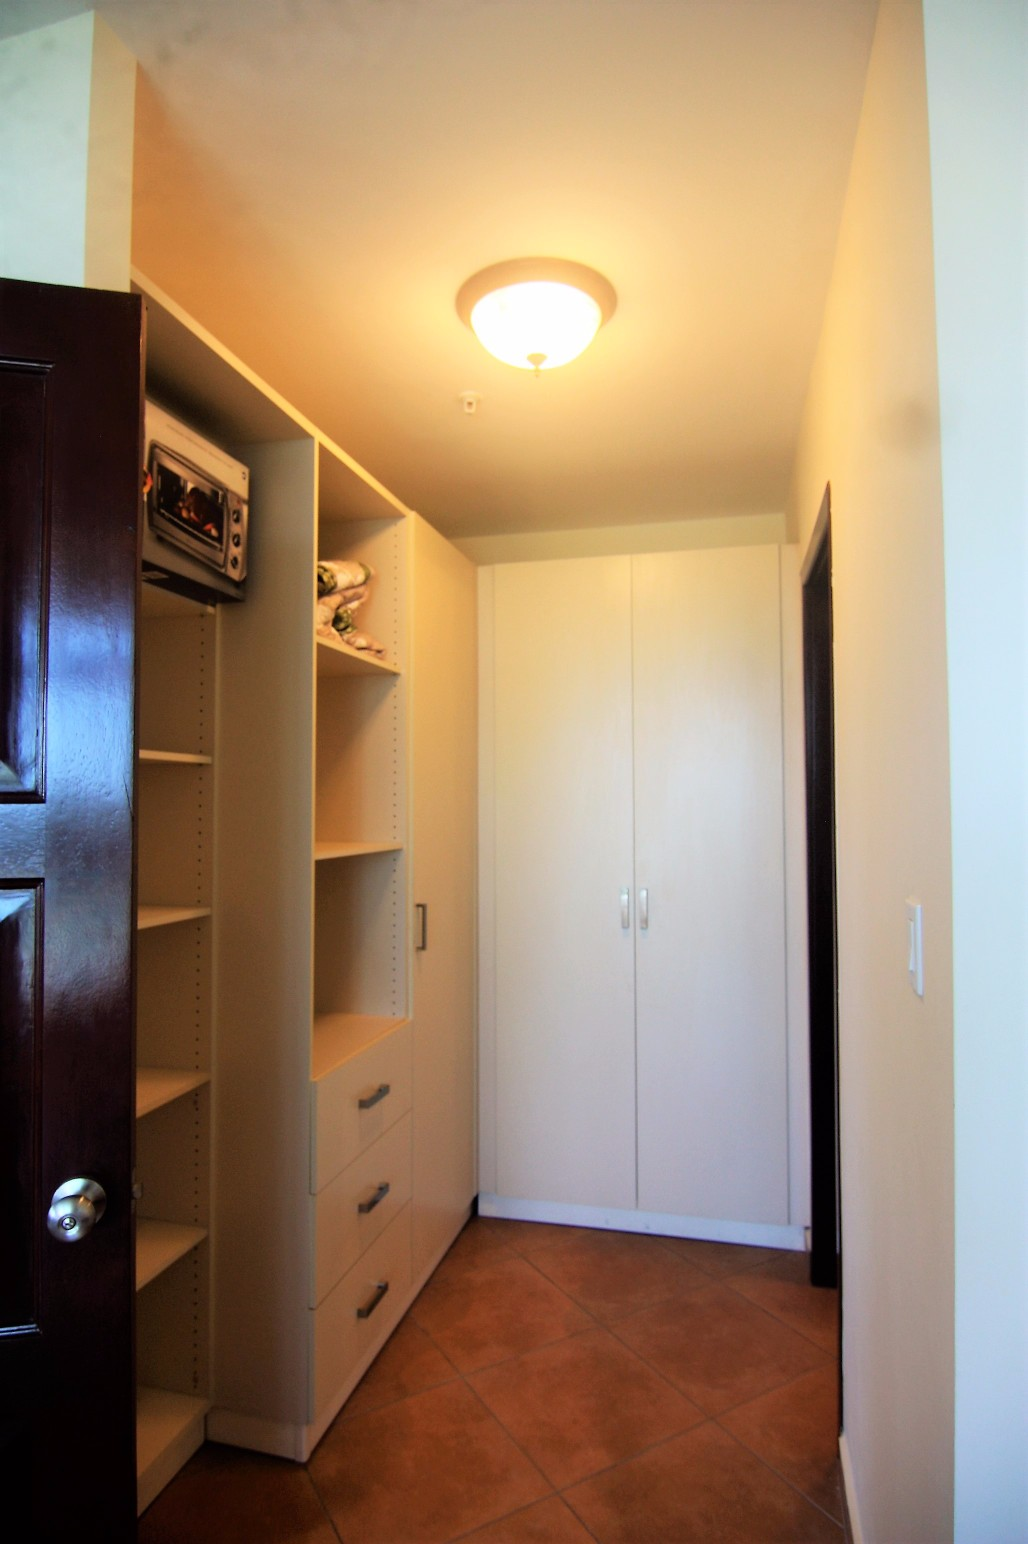 Golf Course Rentals Ways To Add Lighting A Closet Without Wiring Apartment Therapy